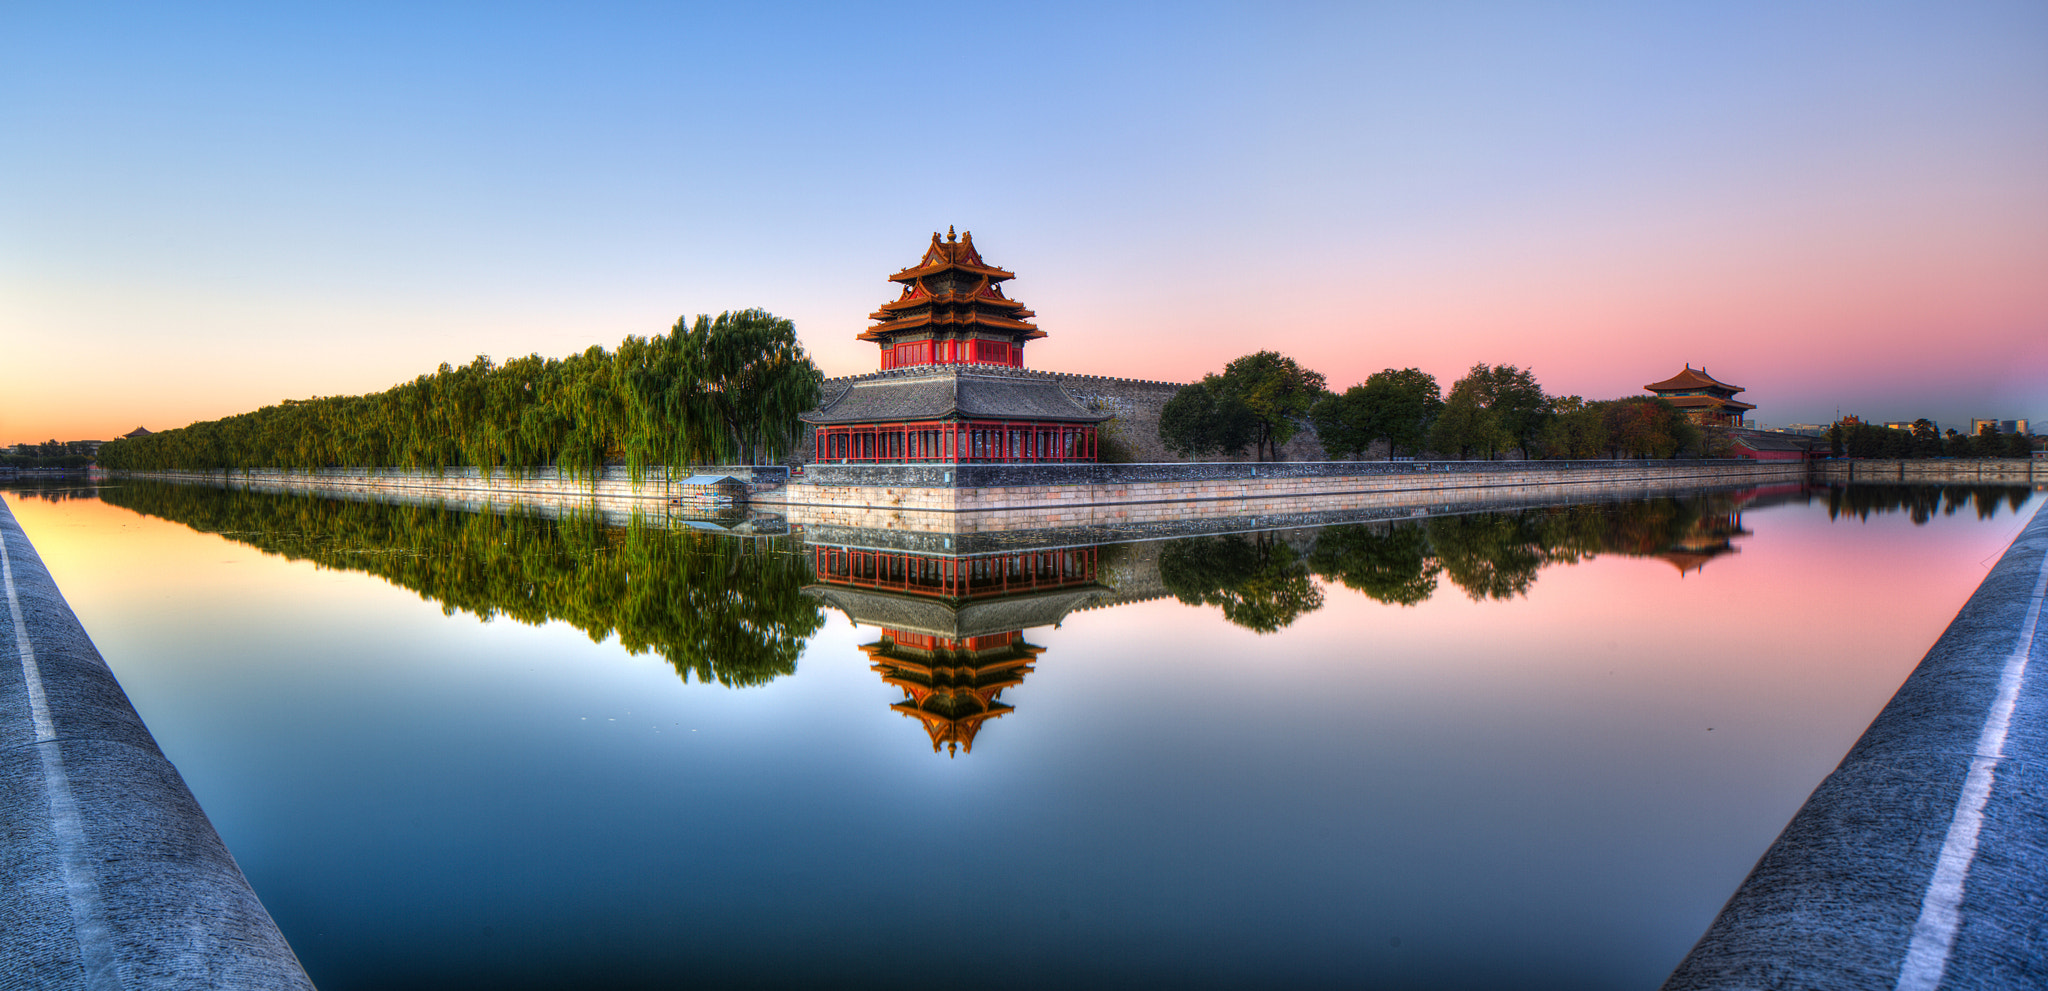 Photograph Forbidden city by Haiwei Hu on 500px